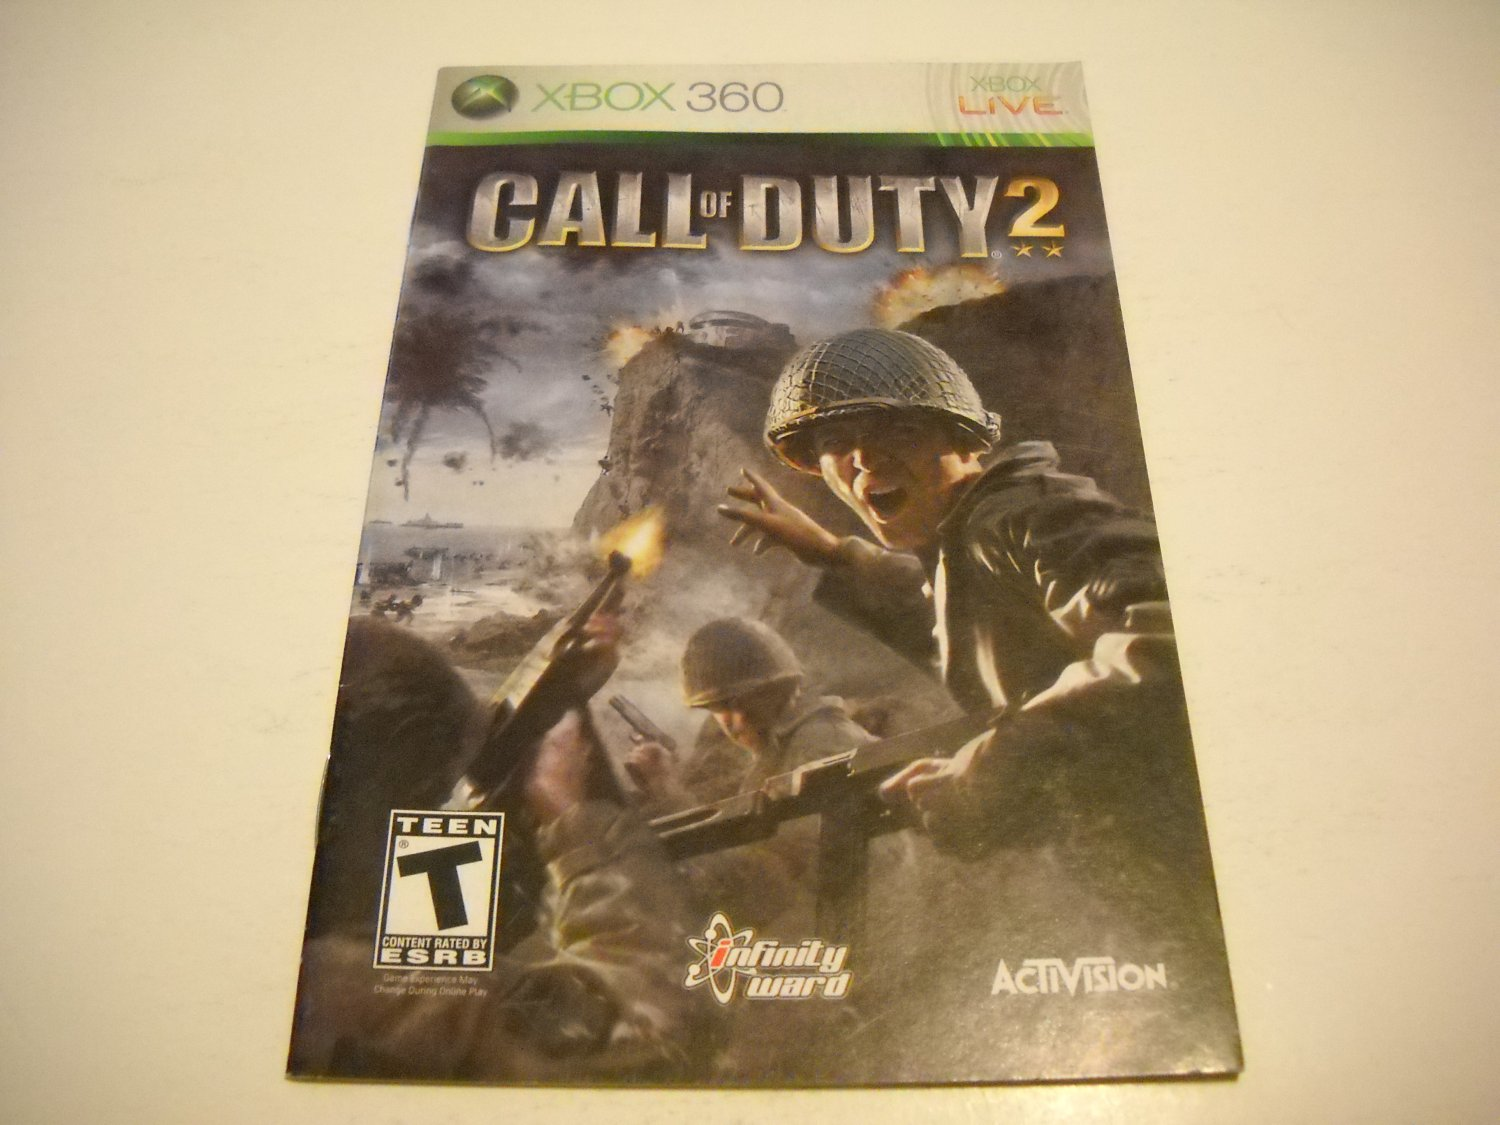 Manual ONLY ~  for Call of Duty 2   - Xbox 360 Instruction Booklet